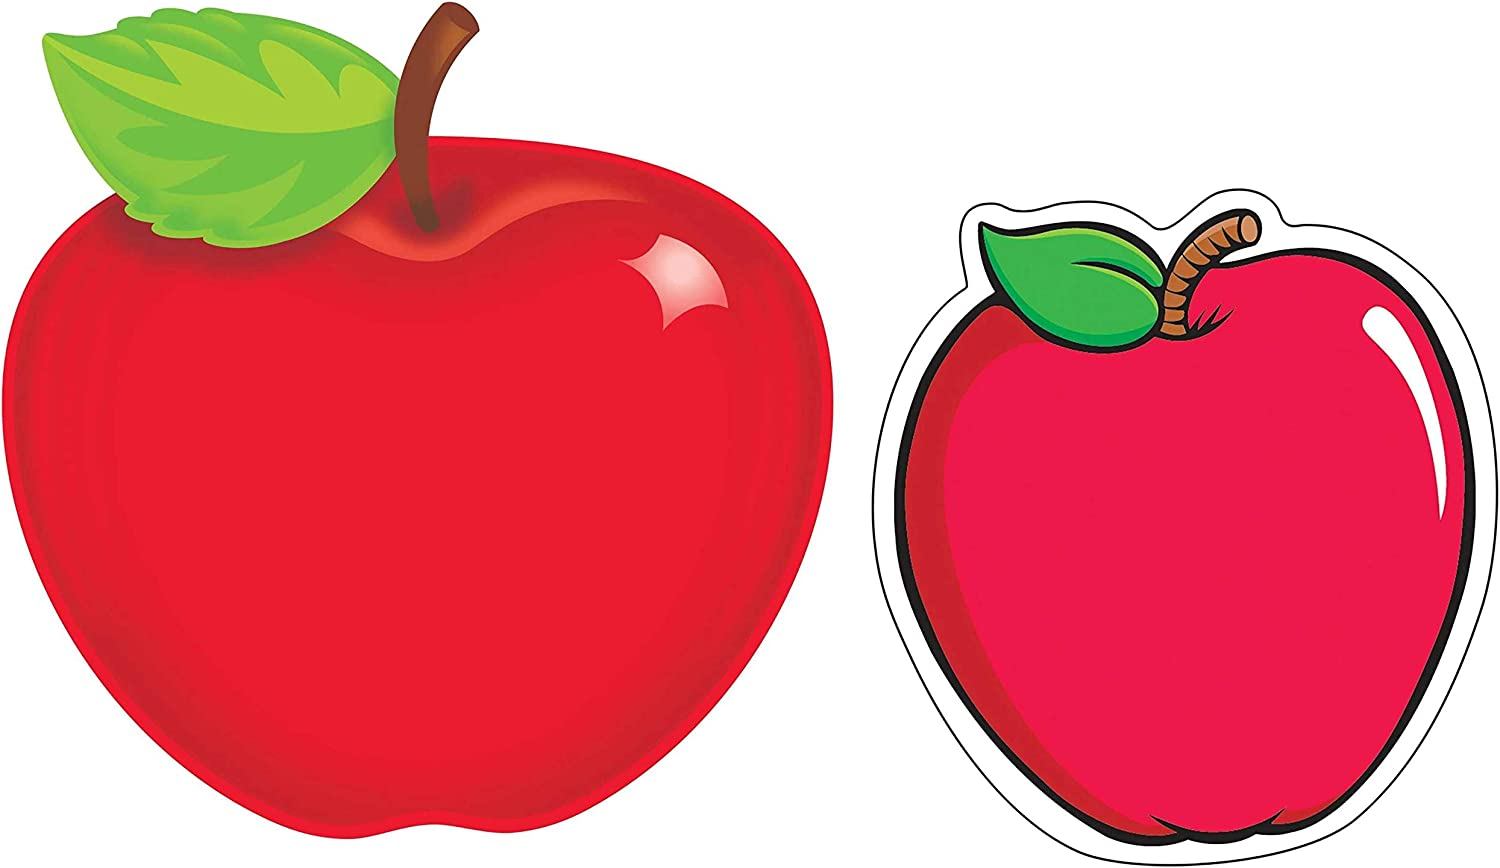 Desk Door Apple Classroom Decorations Class Room Walls Party Lockers Set of 36 Large Apple Cut Outs and 36 Mini Apple Cutouts for Bulletin Board